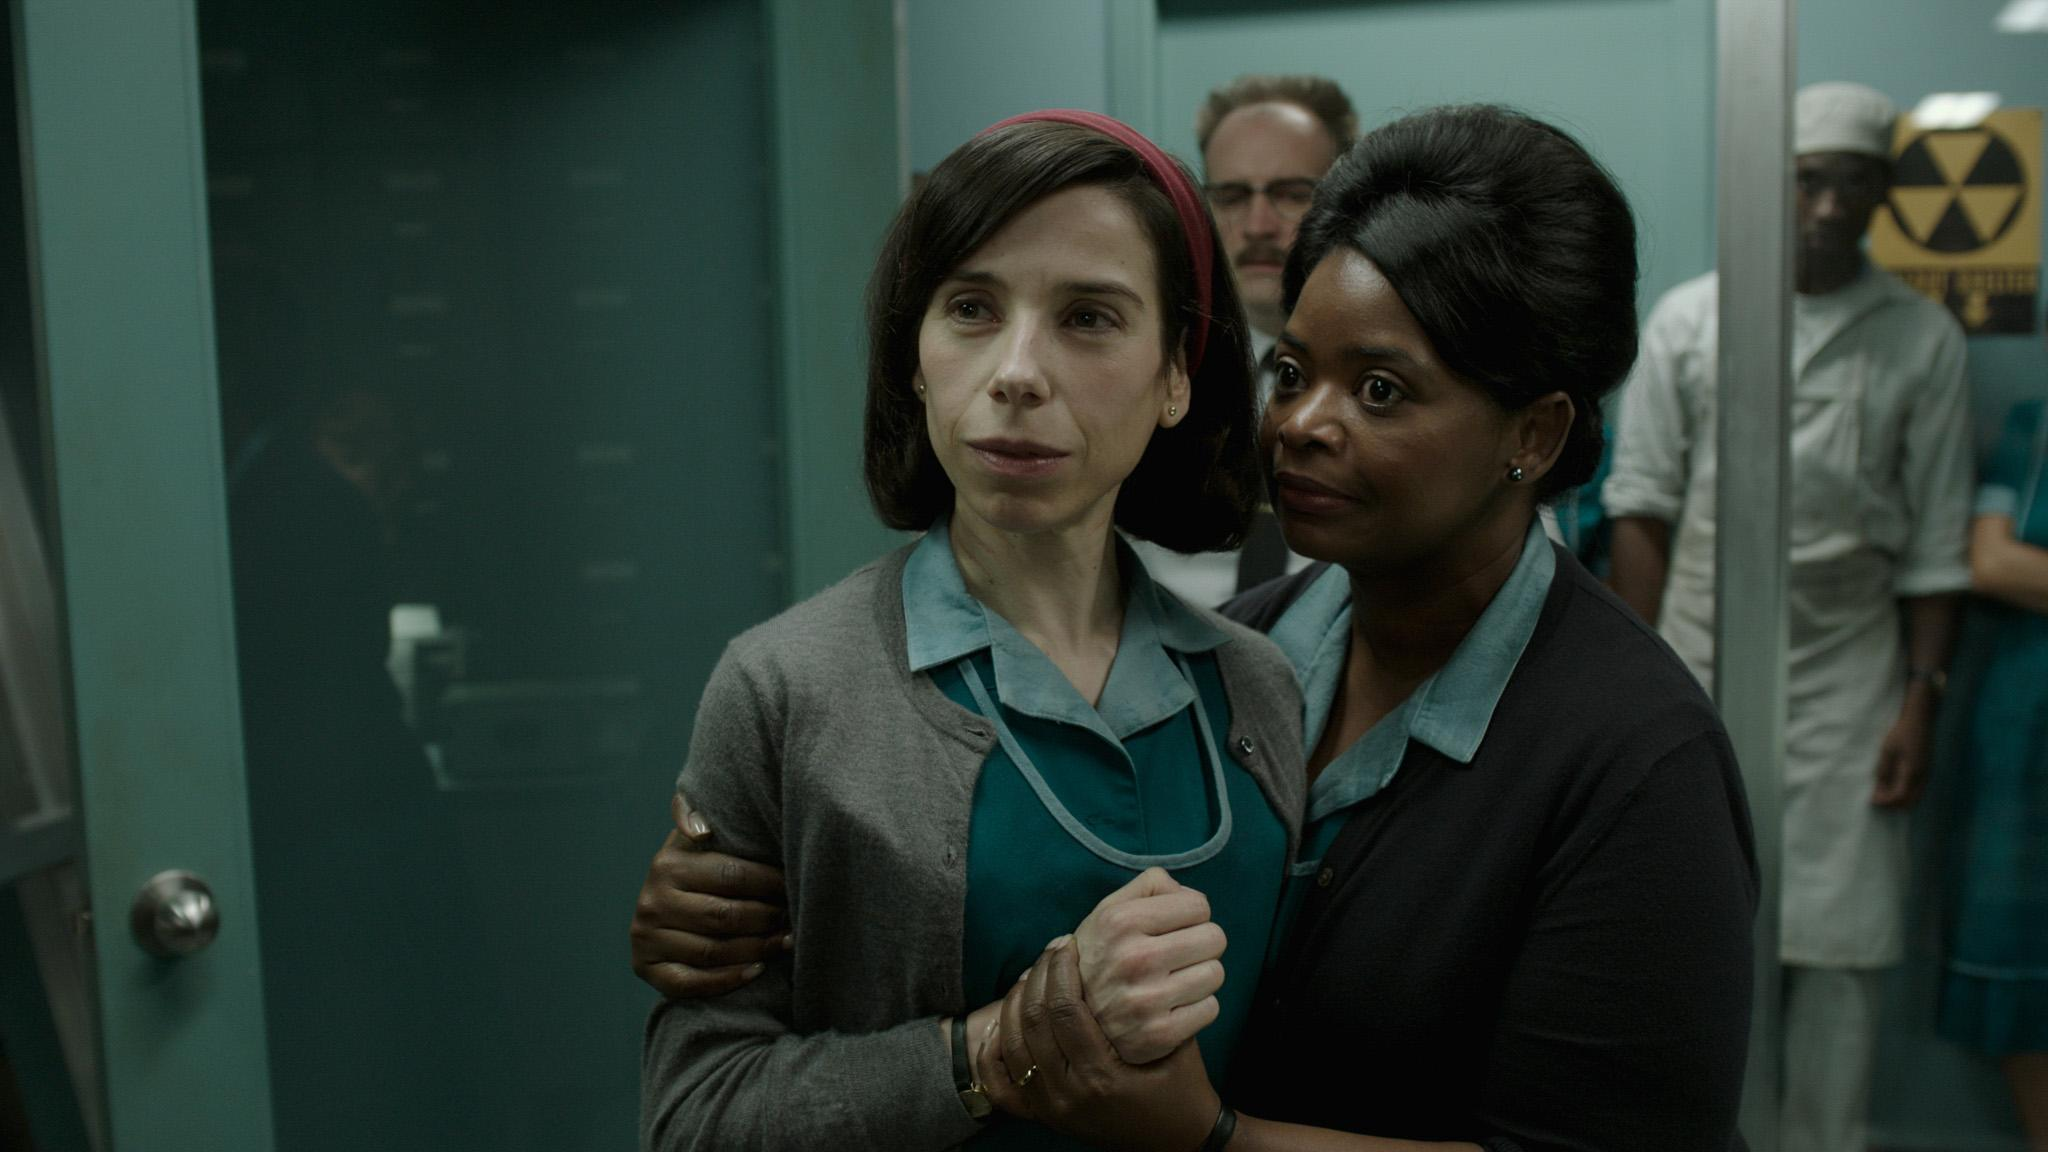 'The Shape of Water' leads race for 2018 Oscars